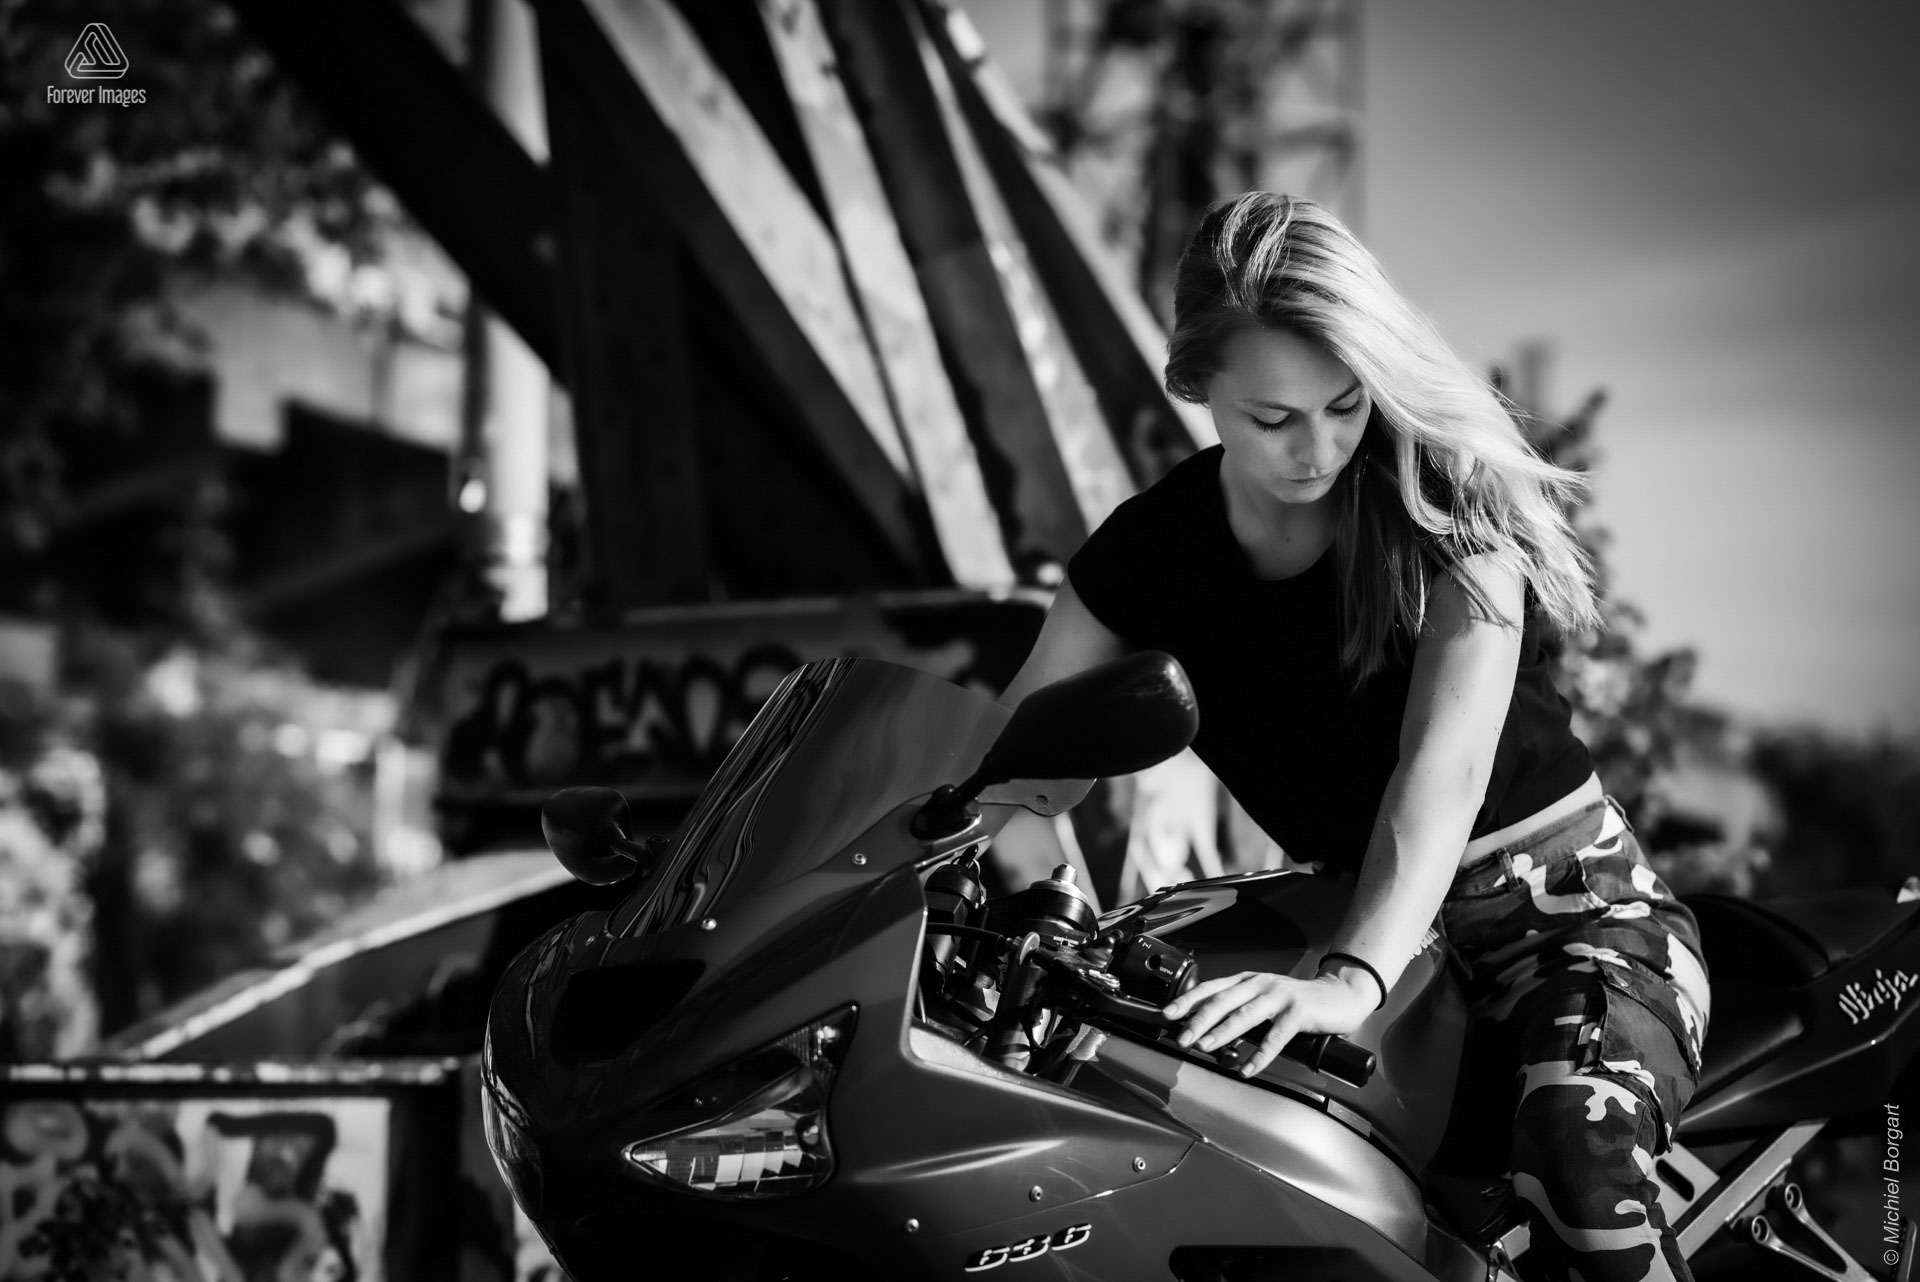 Portrait photo black and white lady on Kawasaki Ninja ZX-6R 636 | Heleen Muchachabiker NDSM Werf | Portrait Photographer Michiel Borgart - Forever Images.